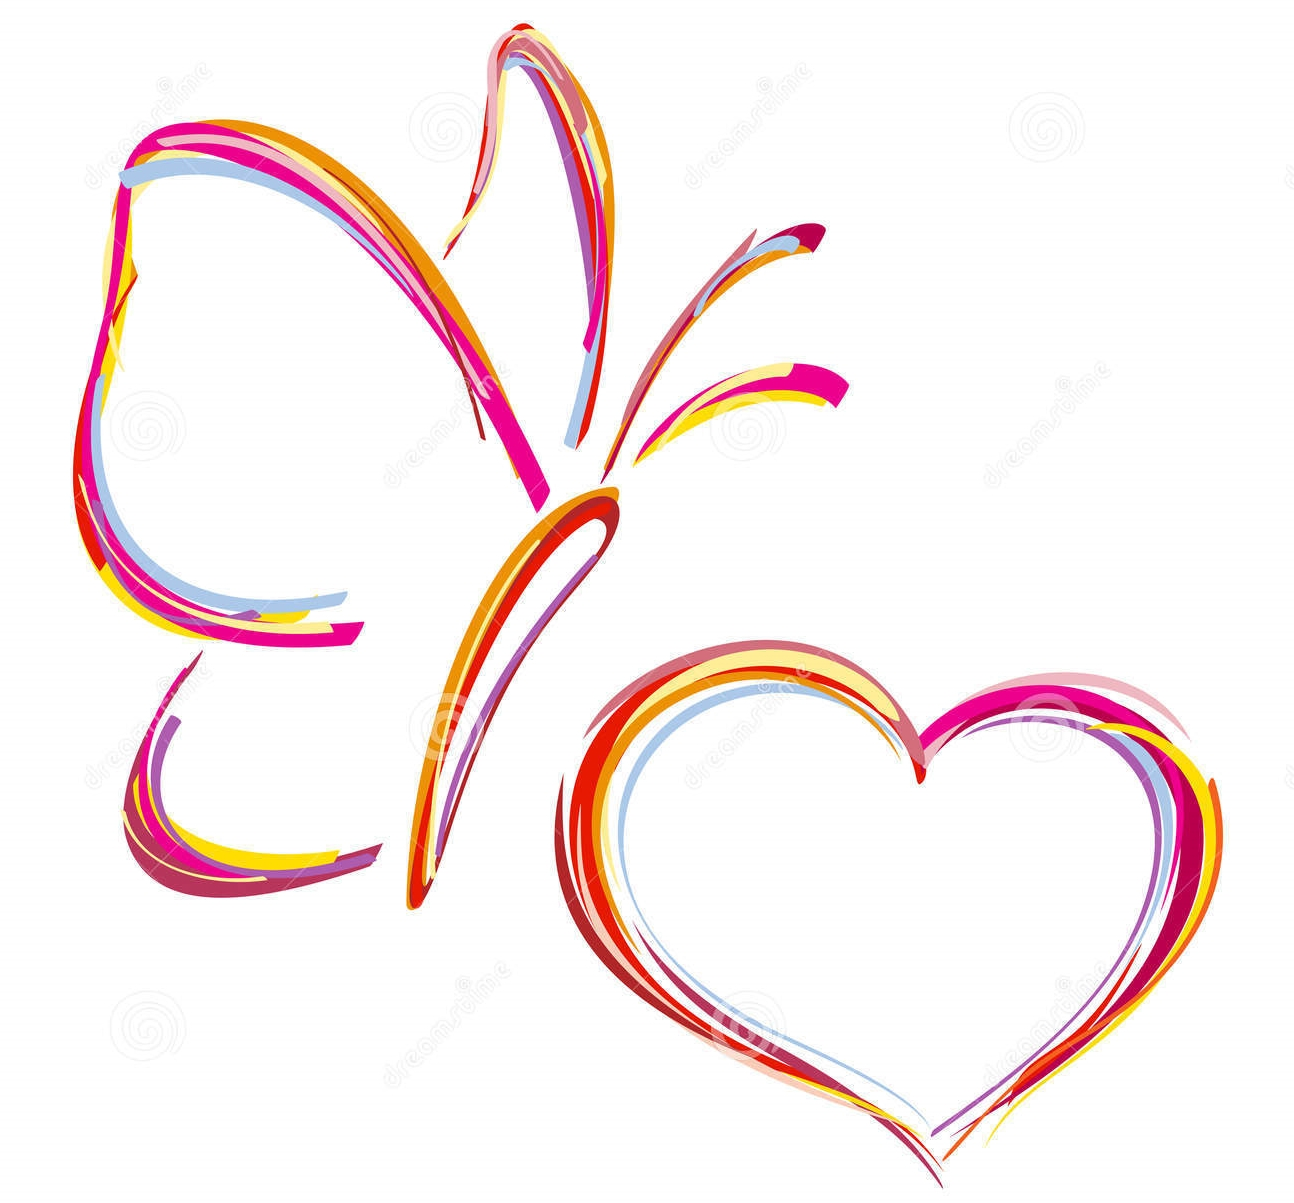 painted-heart-butterfly-vector-35537899